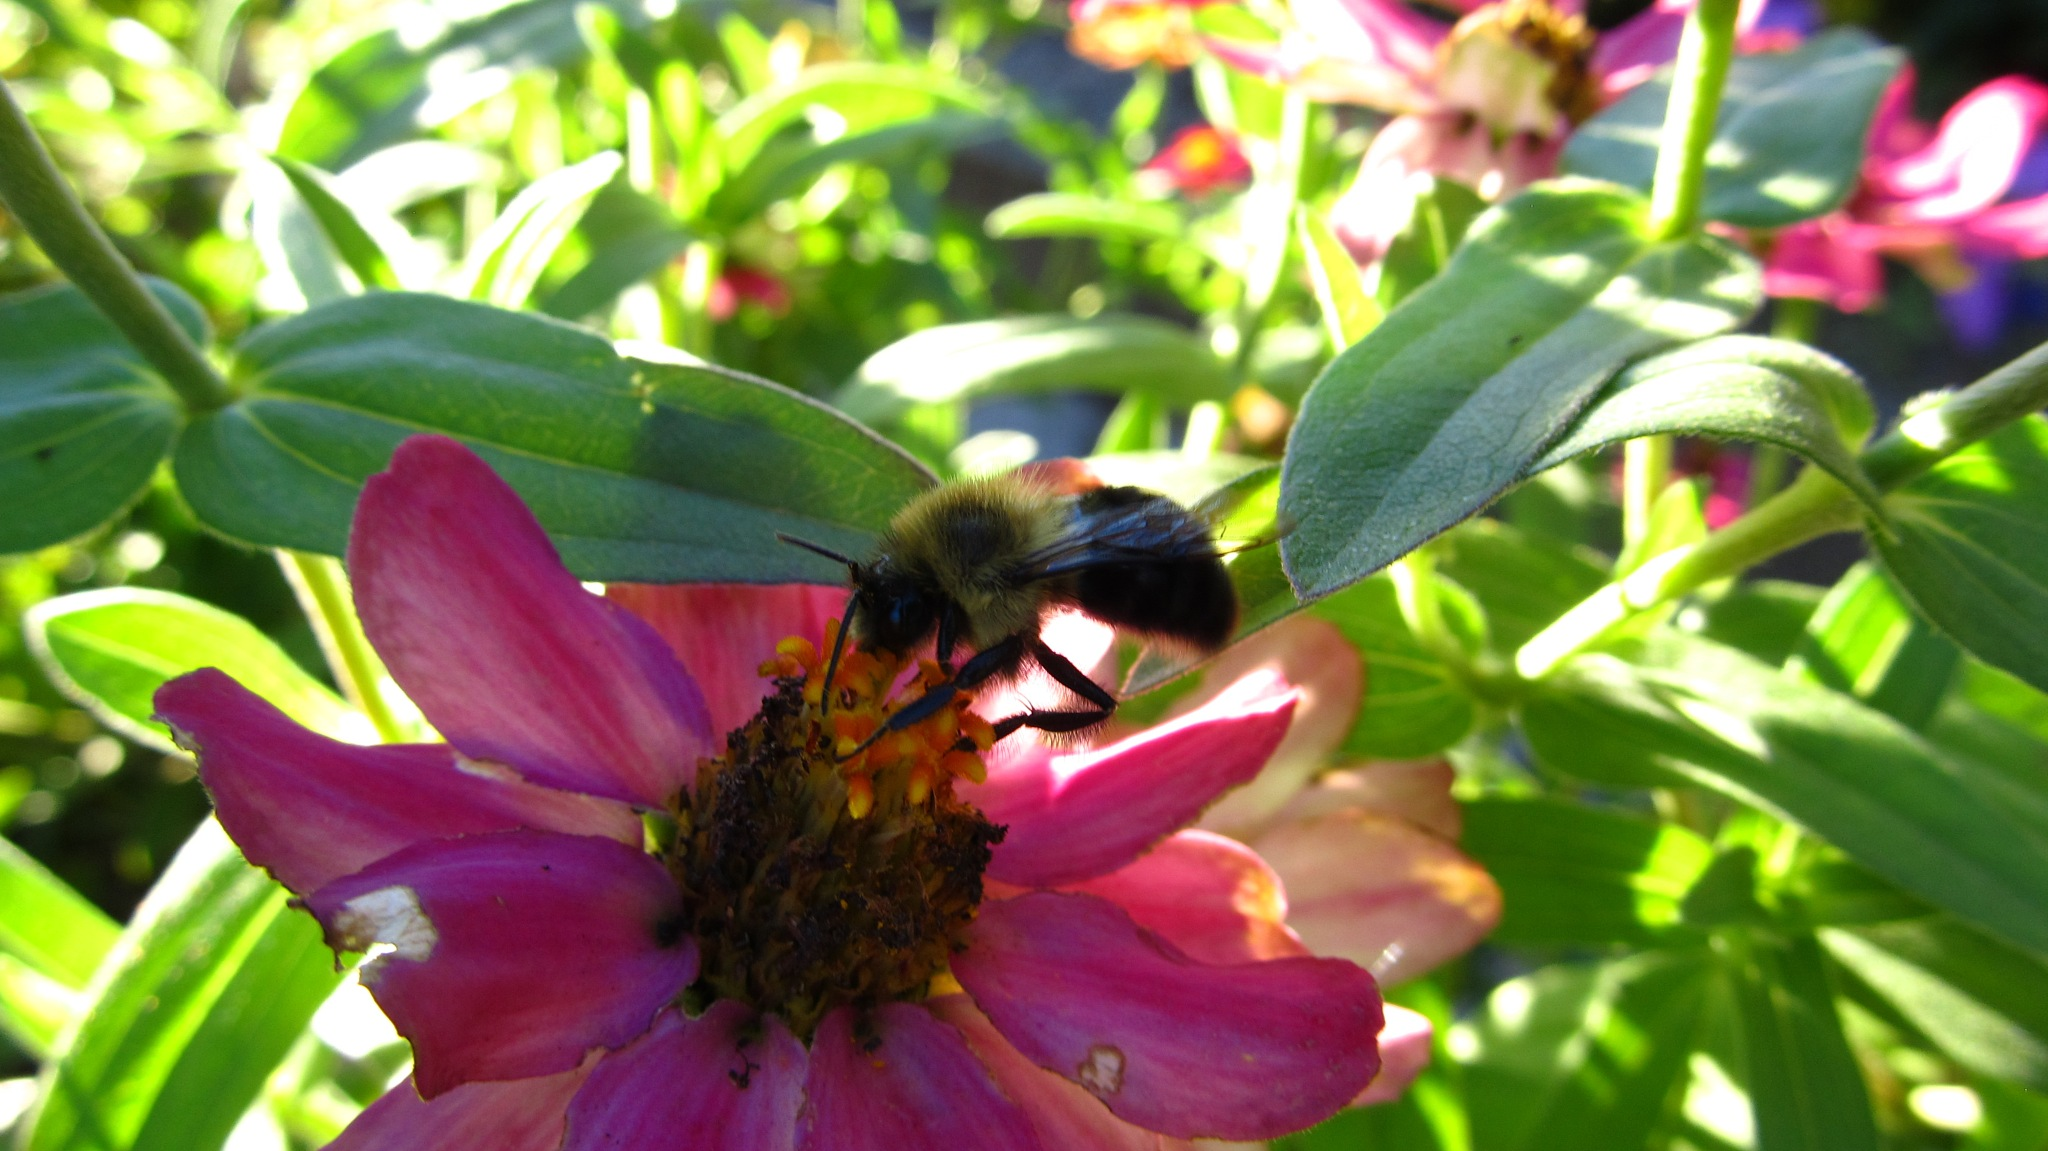 Flower and Bee by simonp